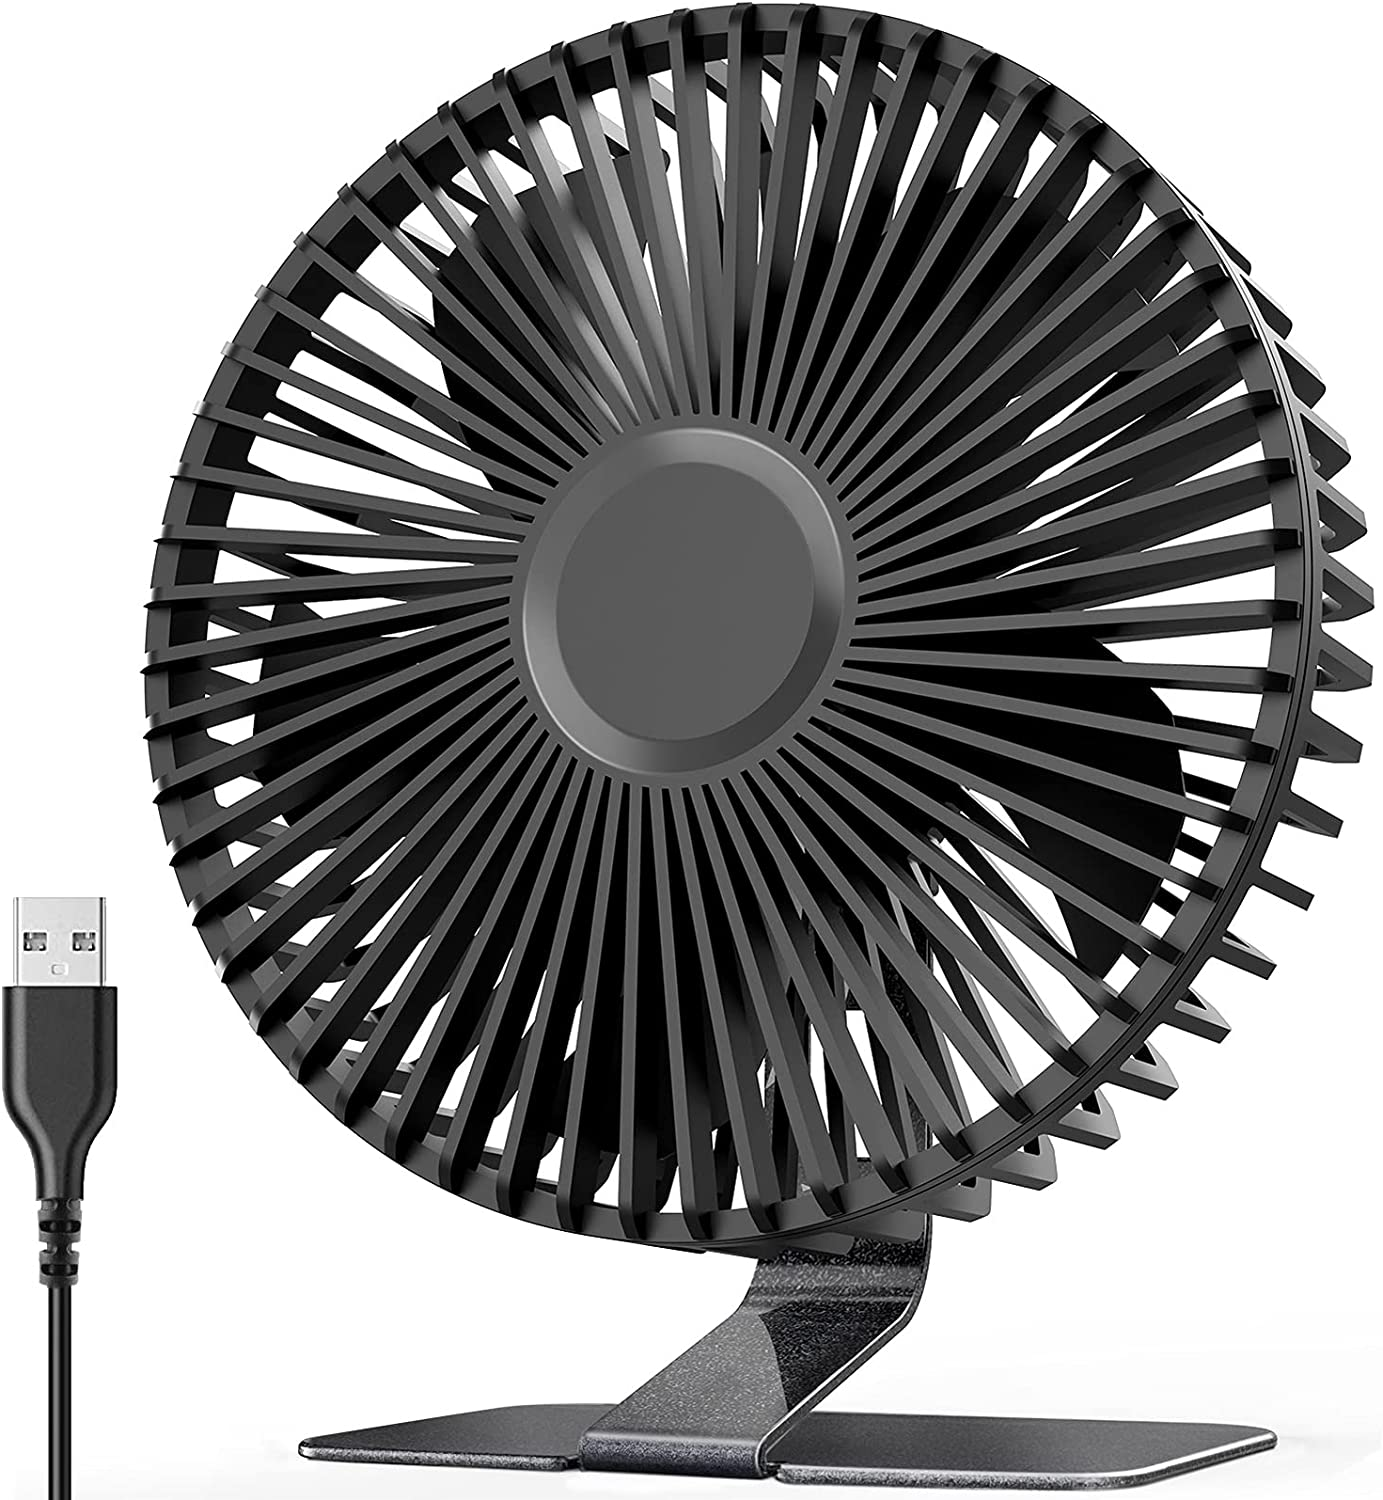 2021 6 INCH USB Desk Fan with Upgraded Strong Airflow, 4 Speeds, Whisper Quiet Desktop Home Office Table Fan, 90°Tilt Adjustable for Better Cooling,4.9 feet Cord,Black Body with Metal Finish Bracket